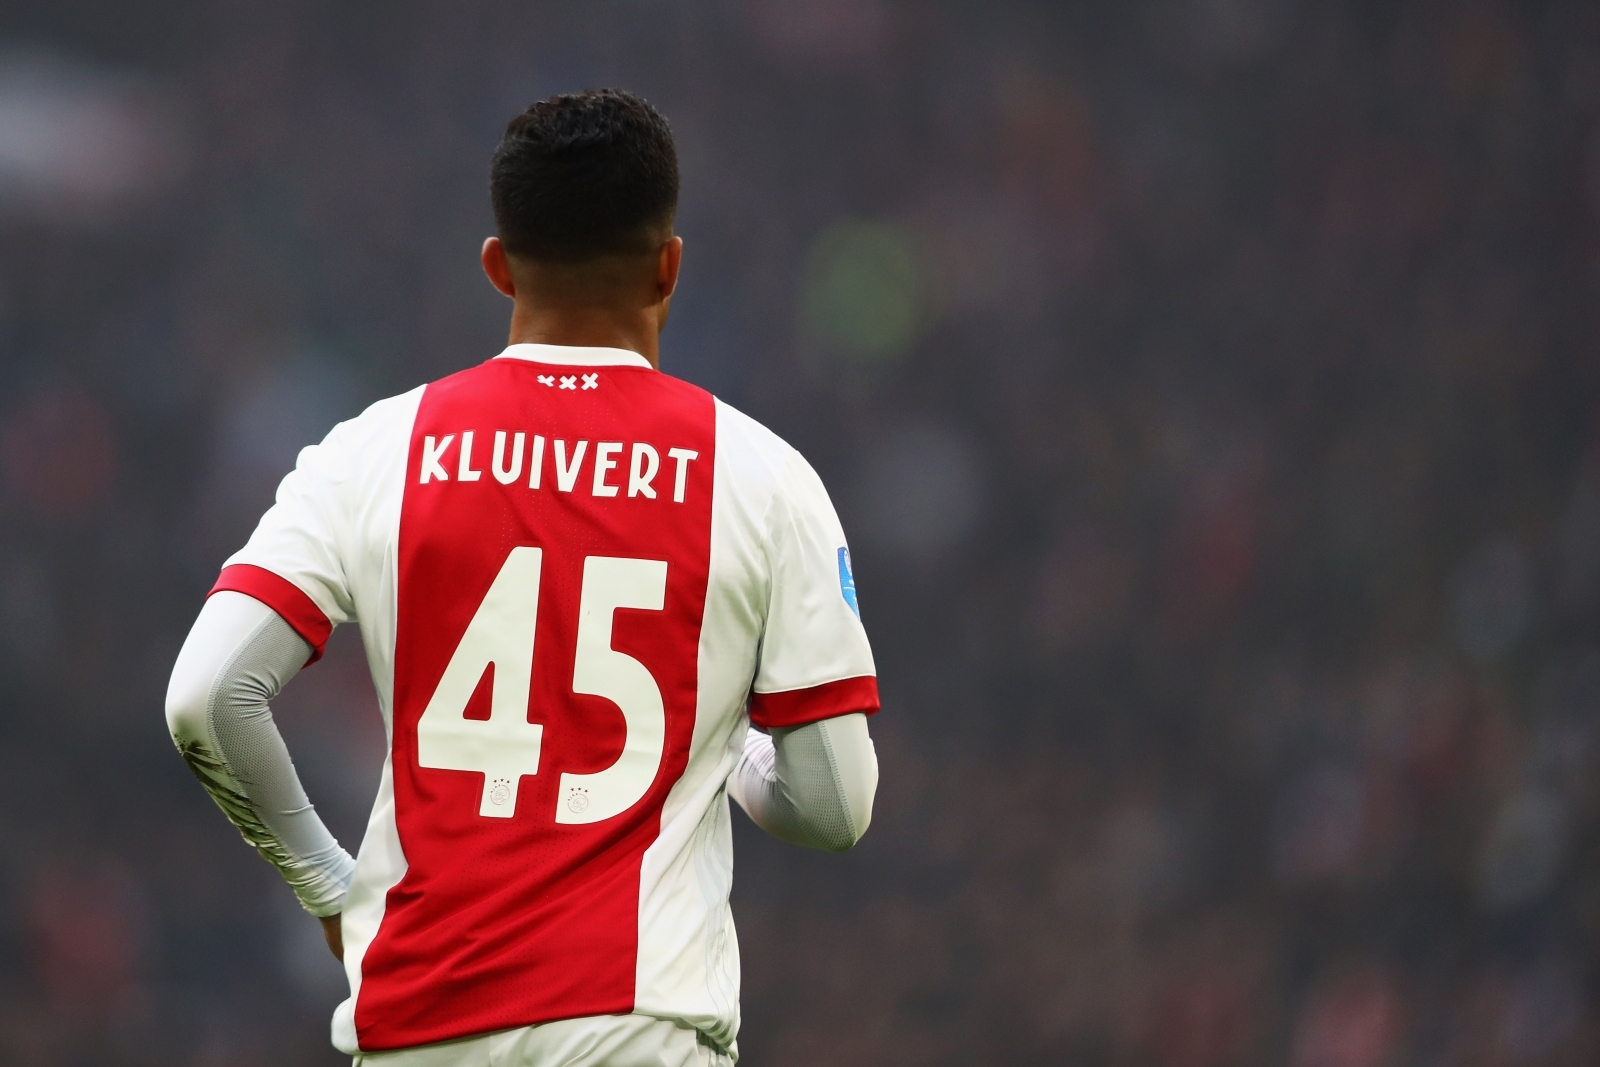 Barca legend Kluivert urges in-demand son to stay at Ajax